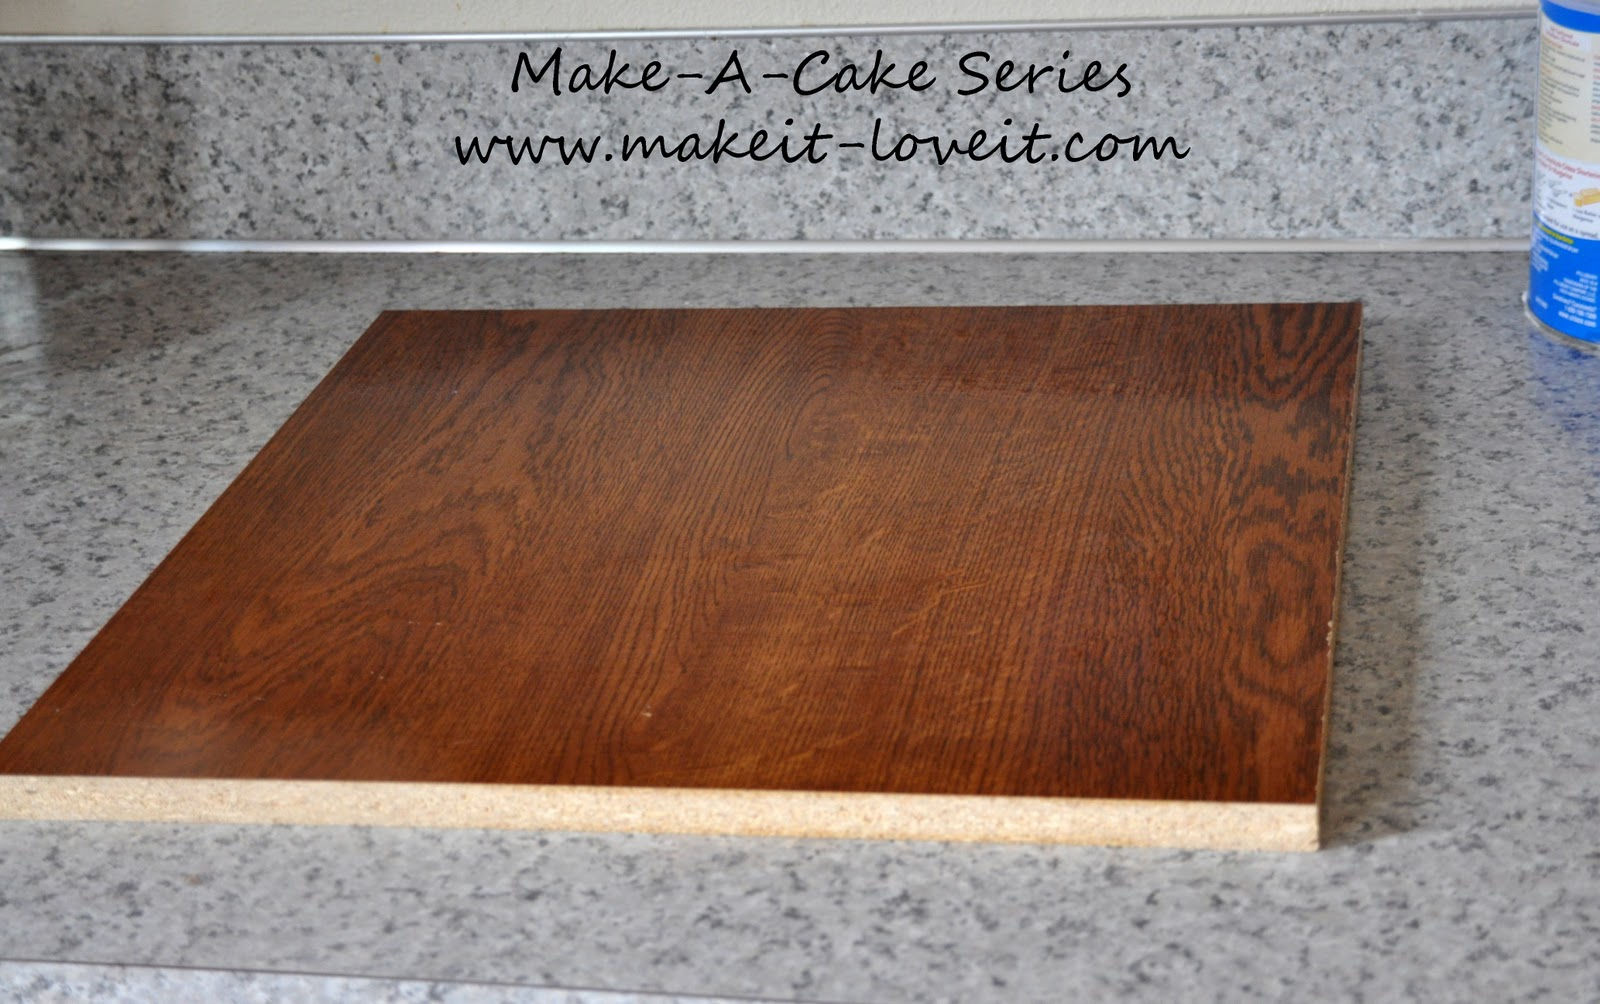 MakeaCake Series Wedding Cakes Make It And Love It - Wedding Cake Boards